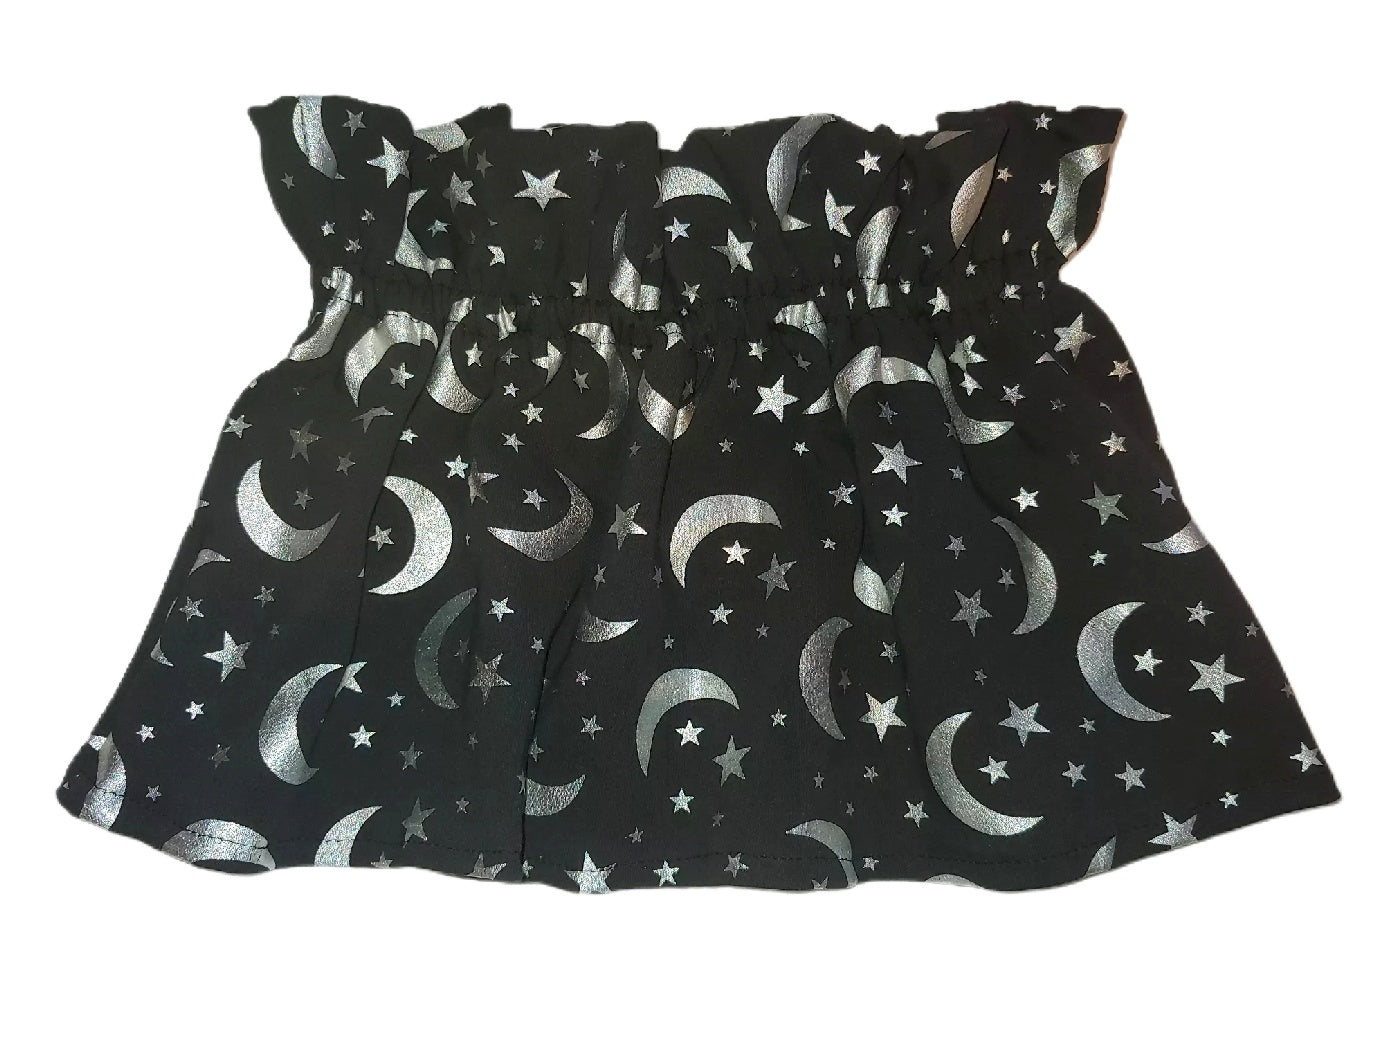 Silver Moon and Stars Paperbag Skirt RTS 4T